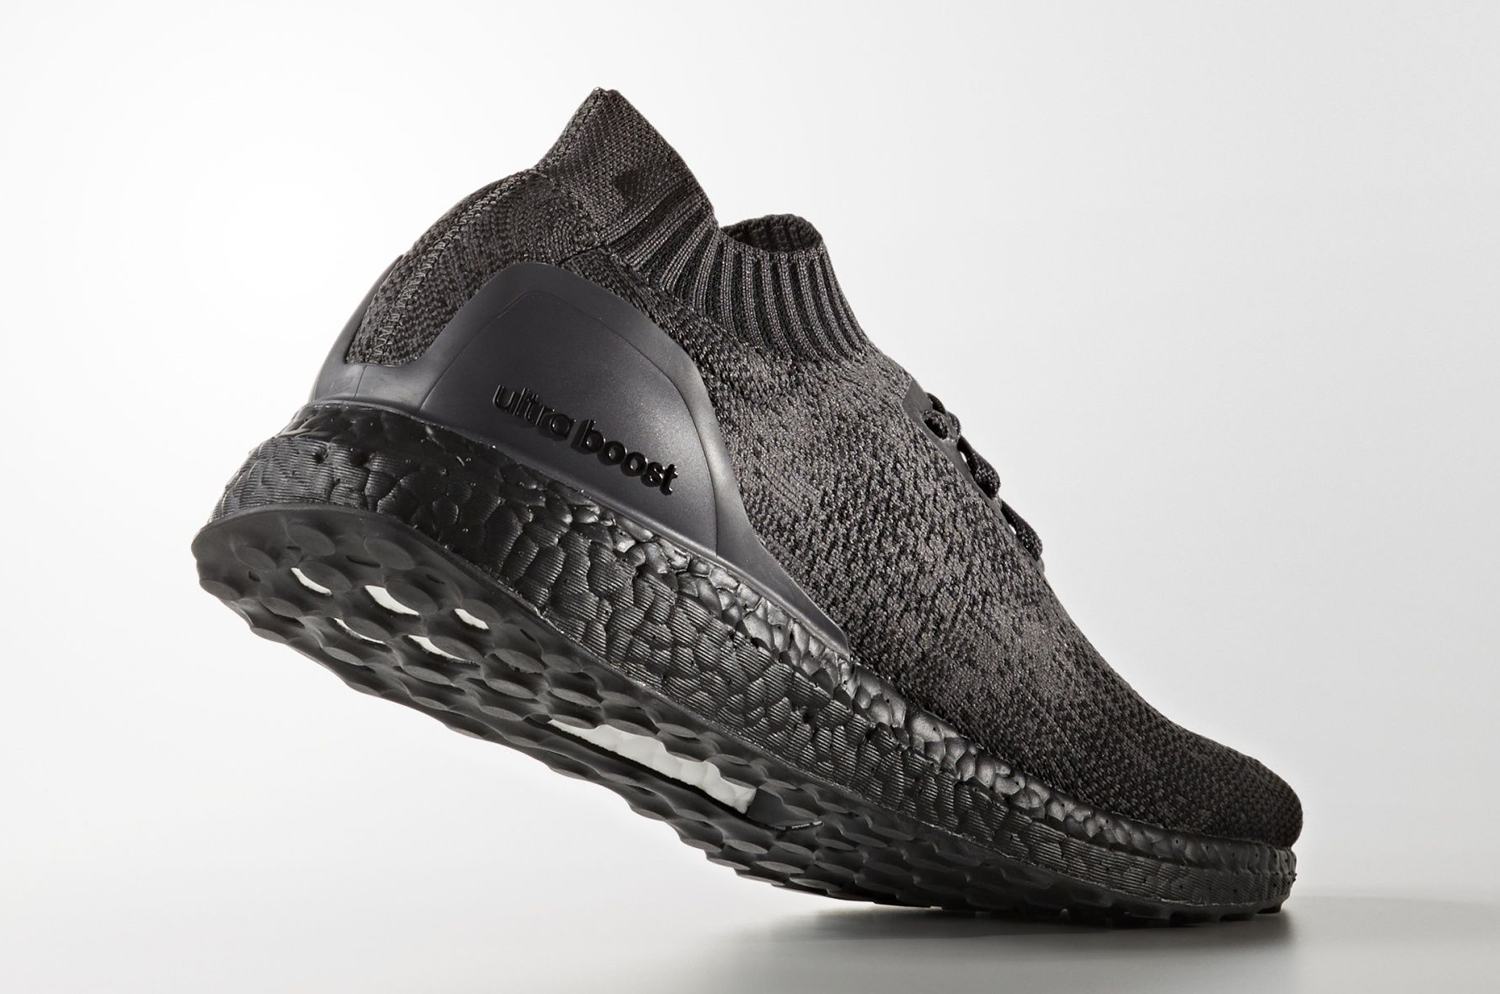 93b9288f9cbd0 Triple Black Adidas Ultra Boost Uncaged Heel